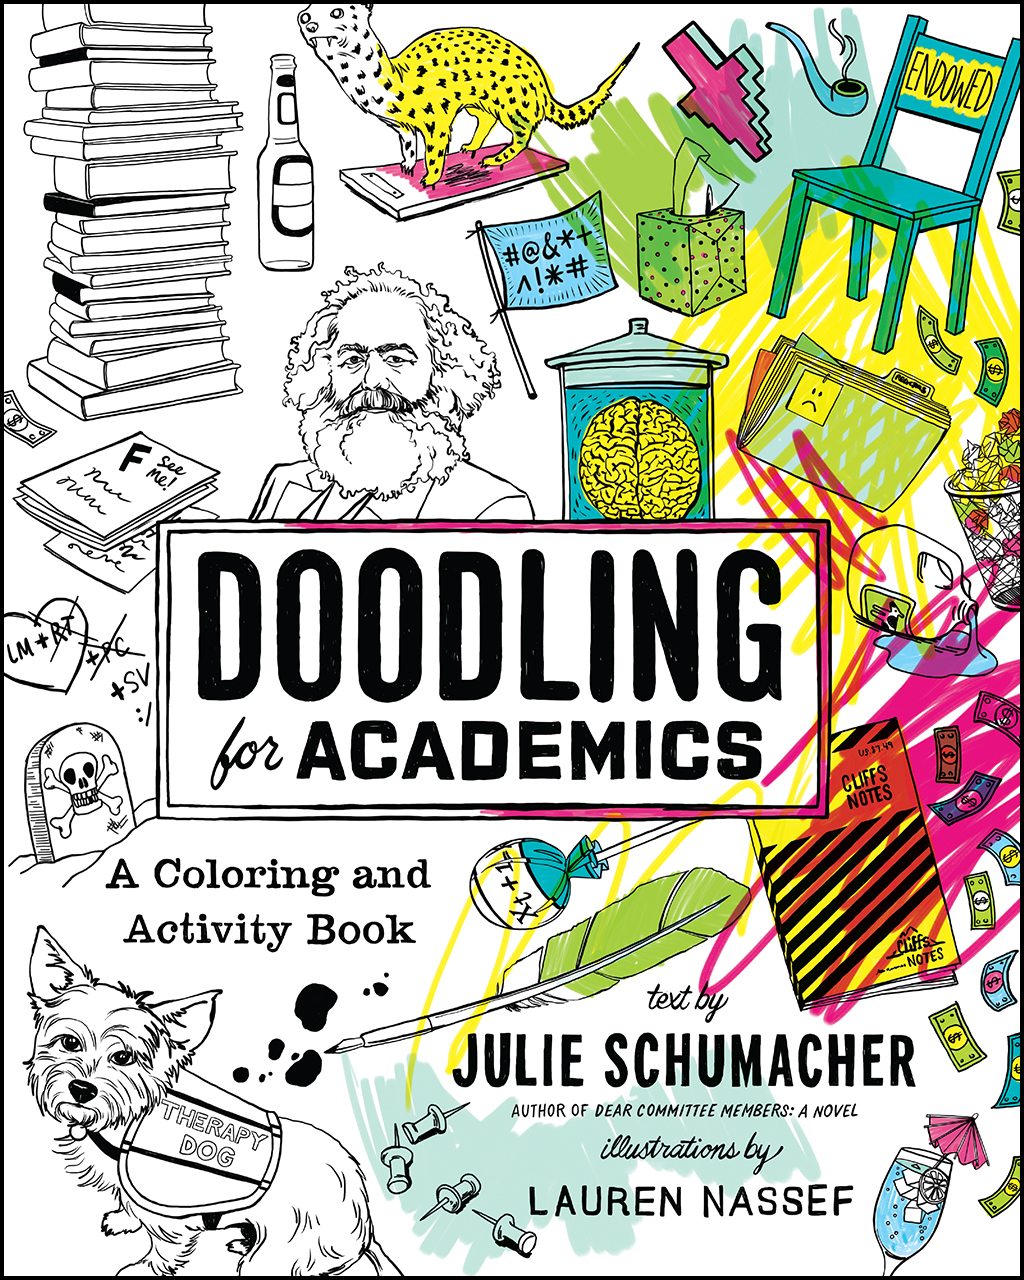 a coloring and activity book julie schumacher doodling for academics addthis sharing buttons